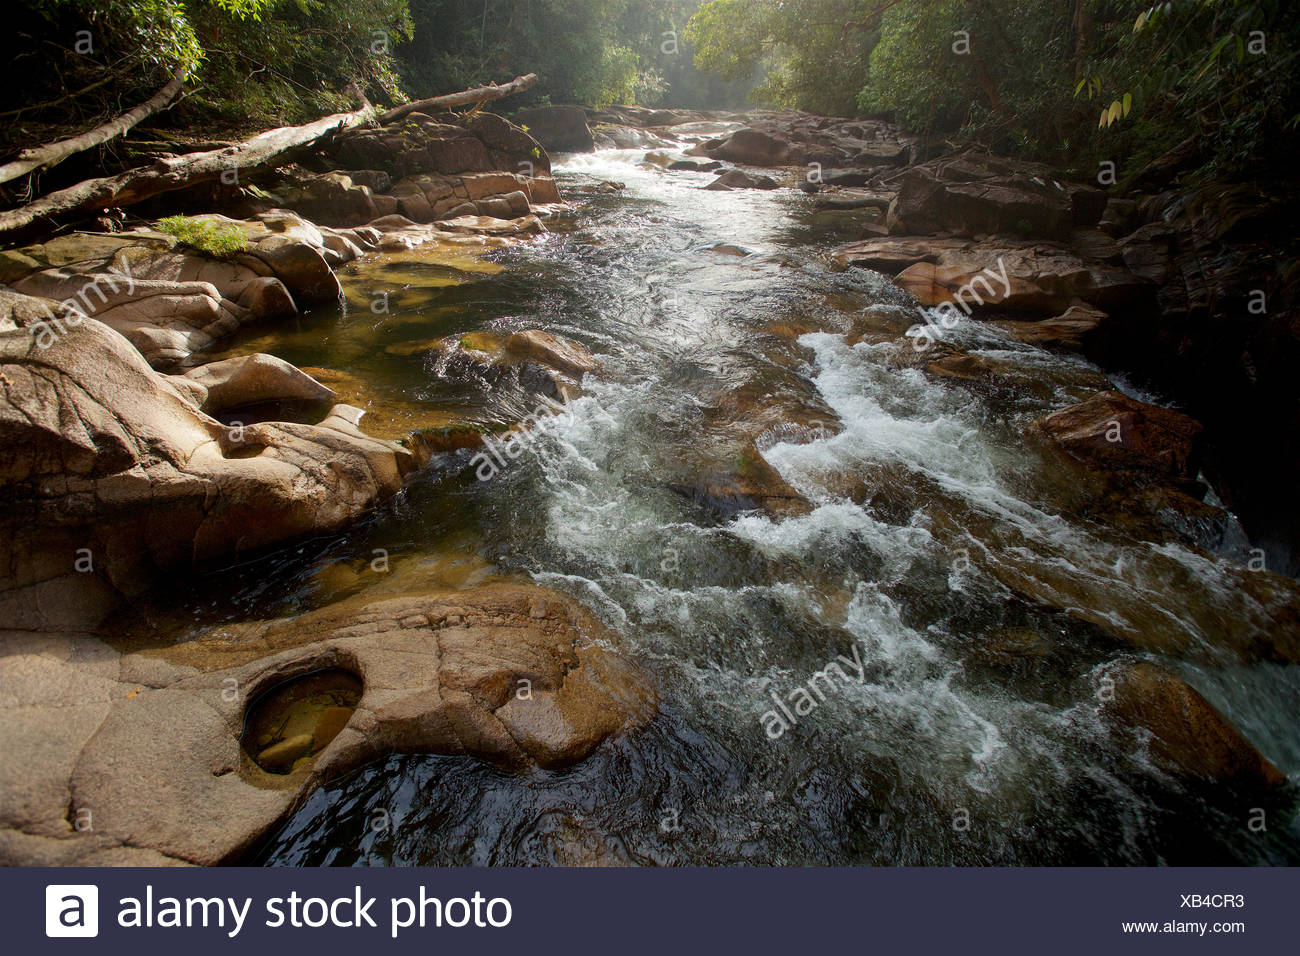 Granite rock lined riverbed with potholes in the upper Siduk River deep in Gunung Palung National Park's pristine rain forest interior. - Stock Image